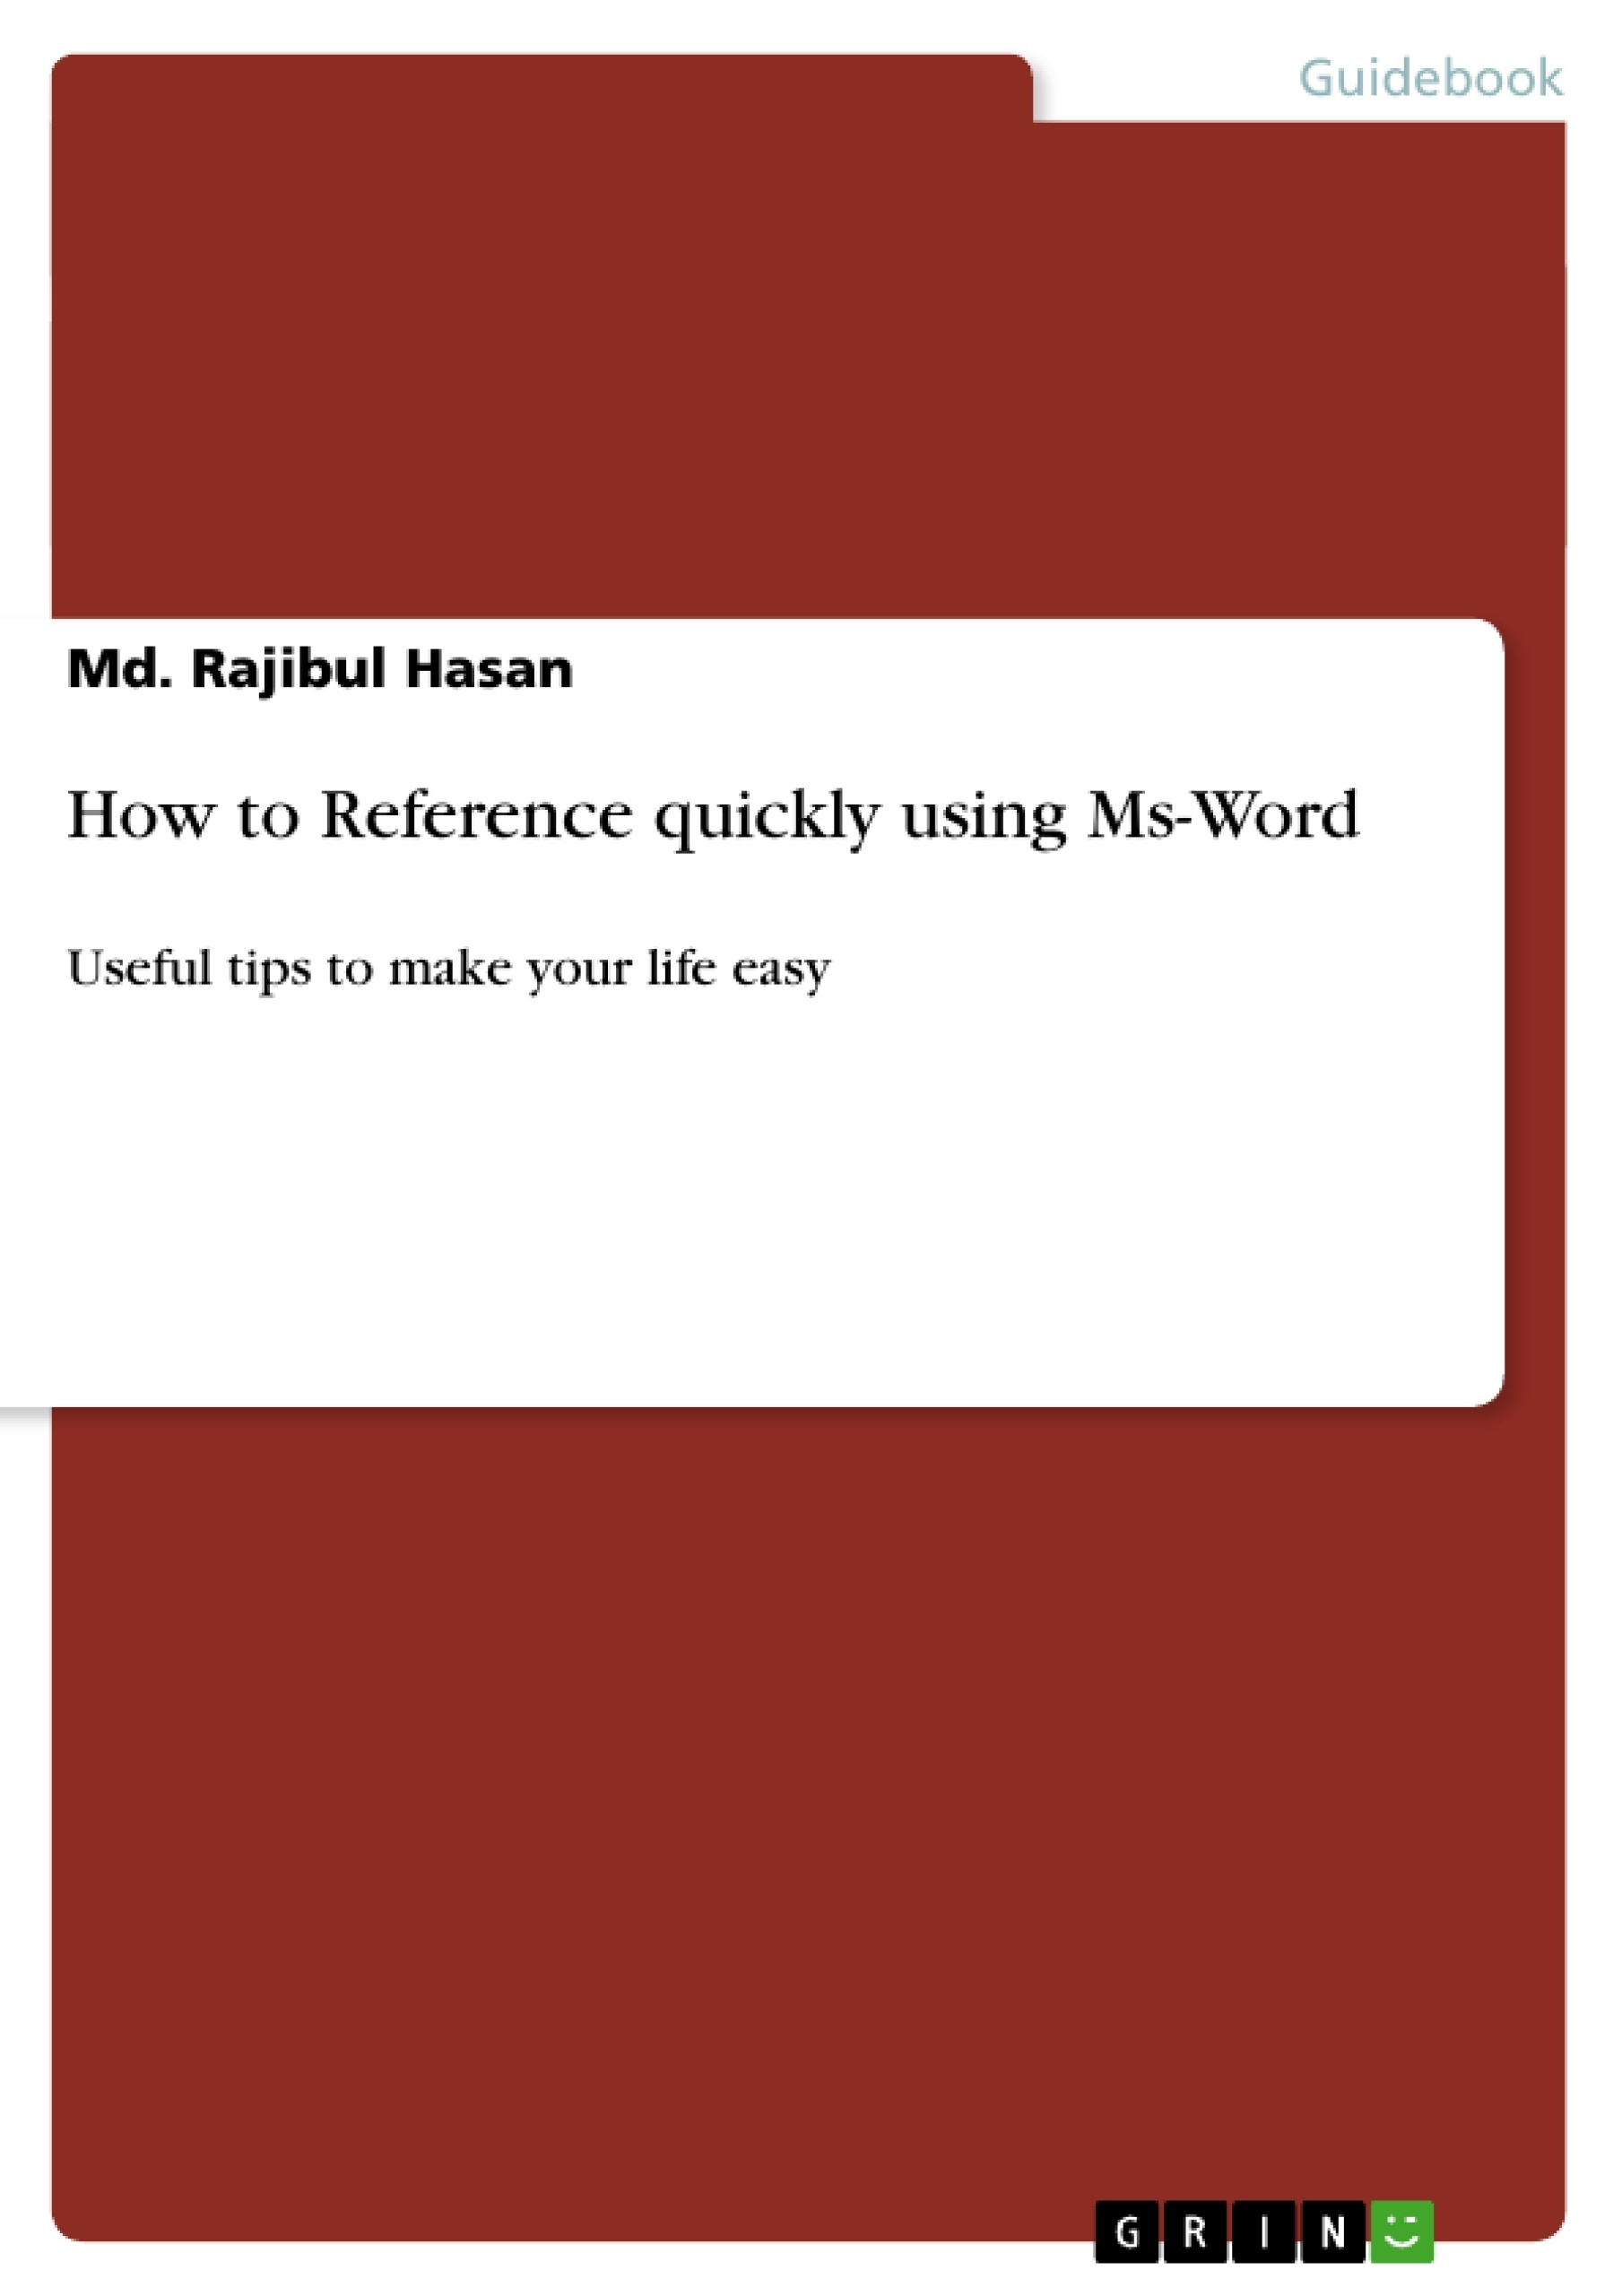 Title: How to Reference quickly using Ms-Word